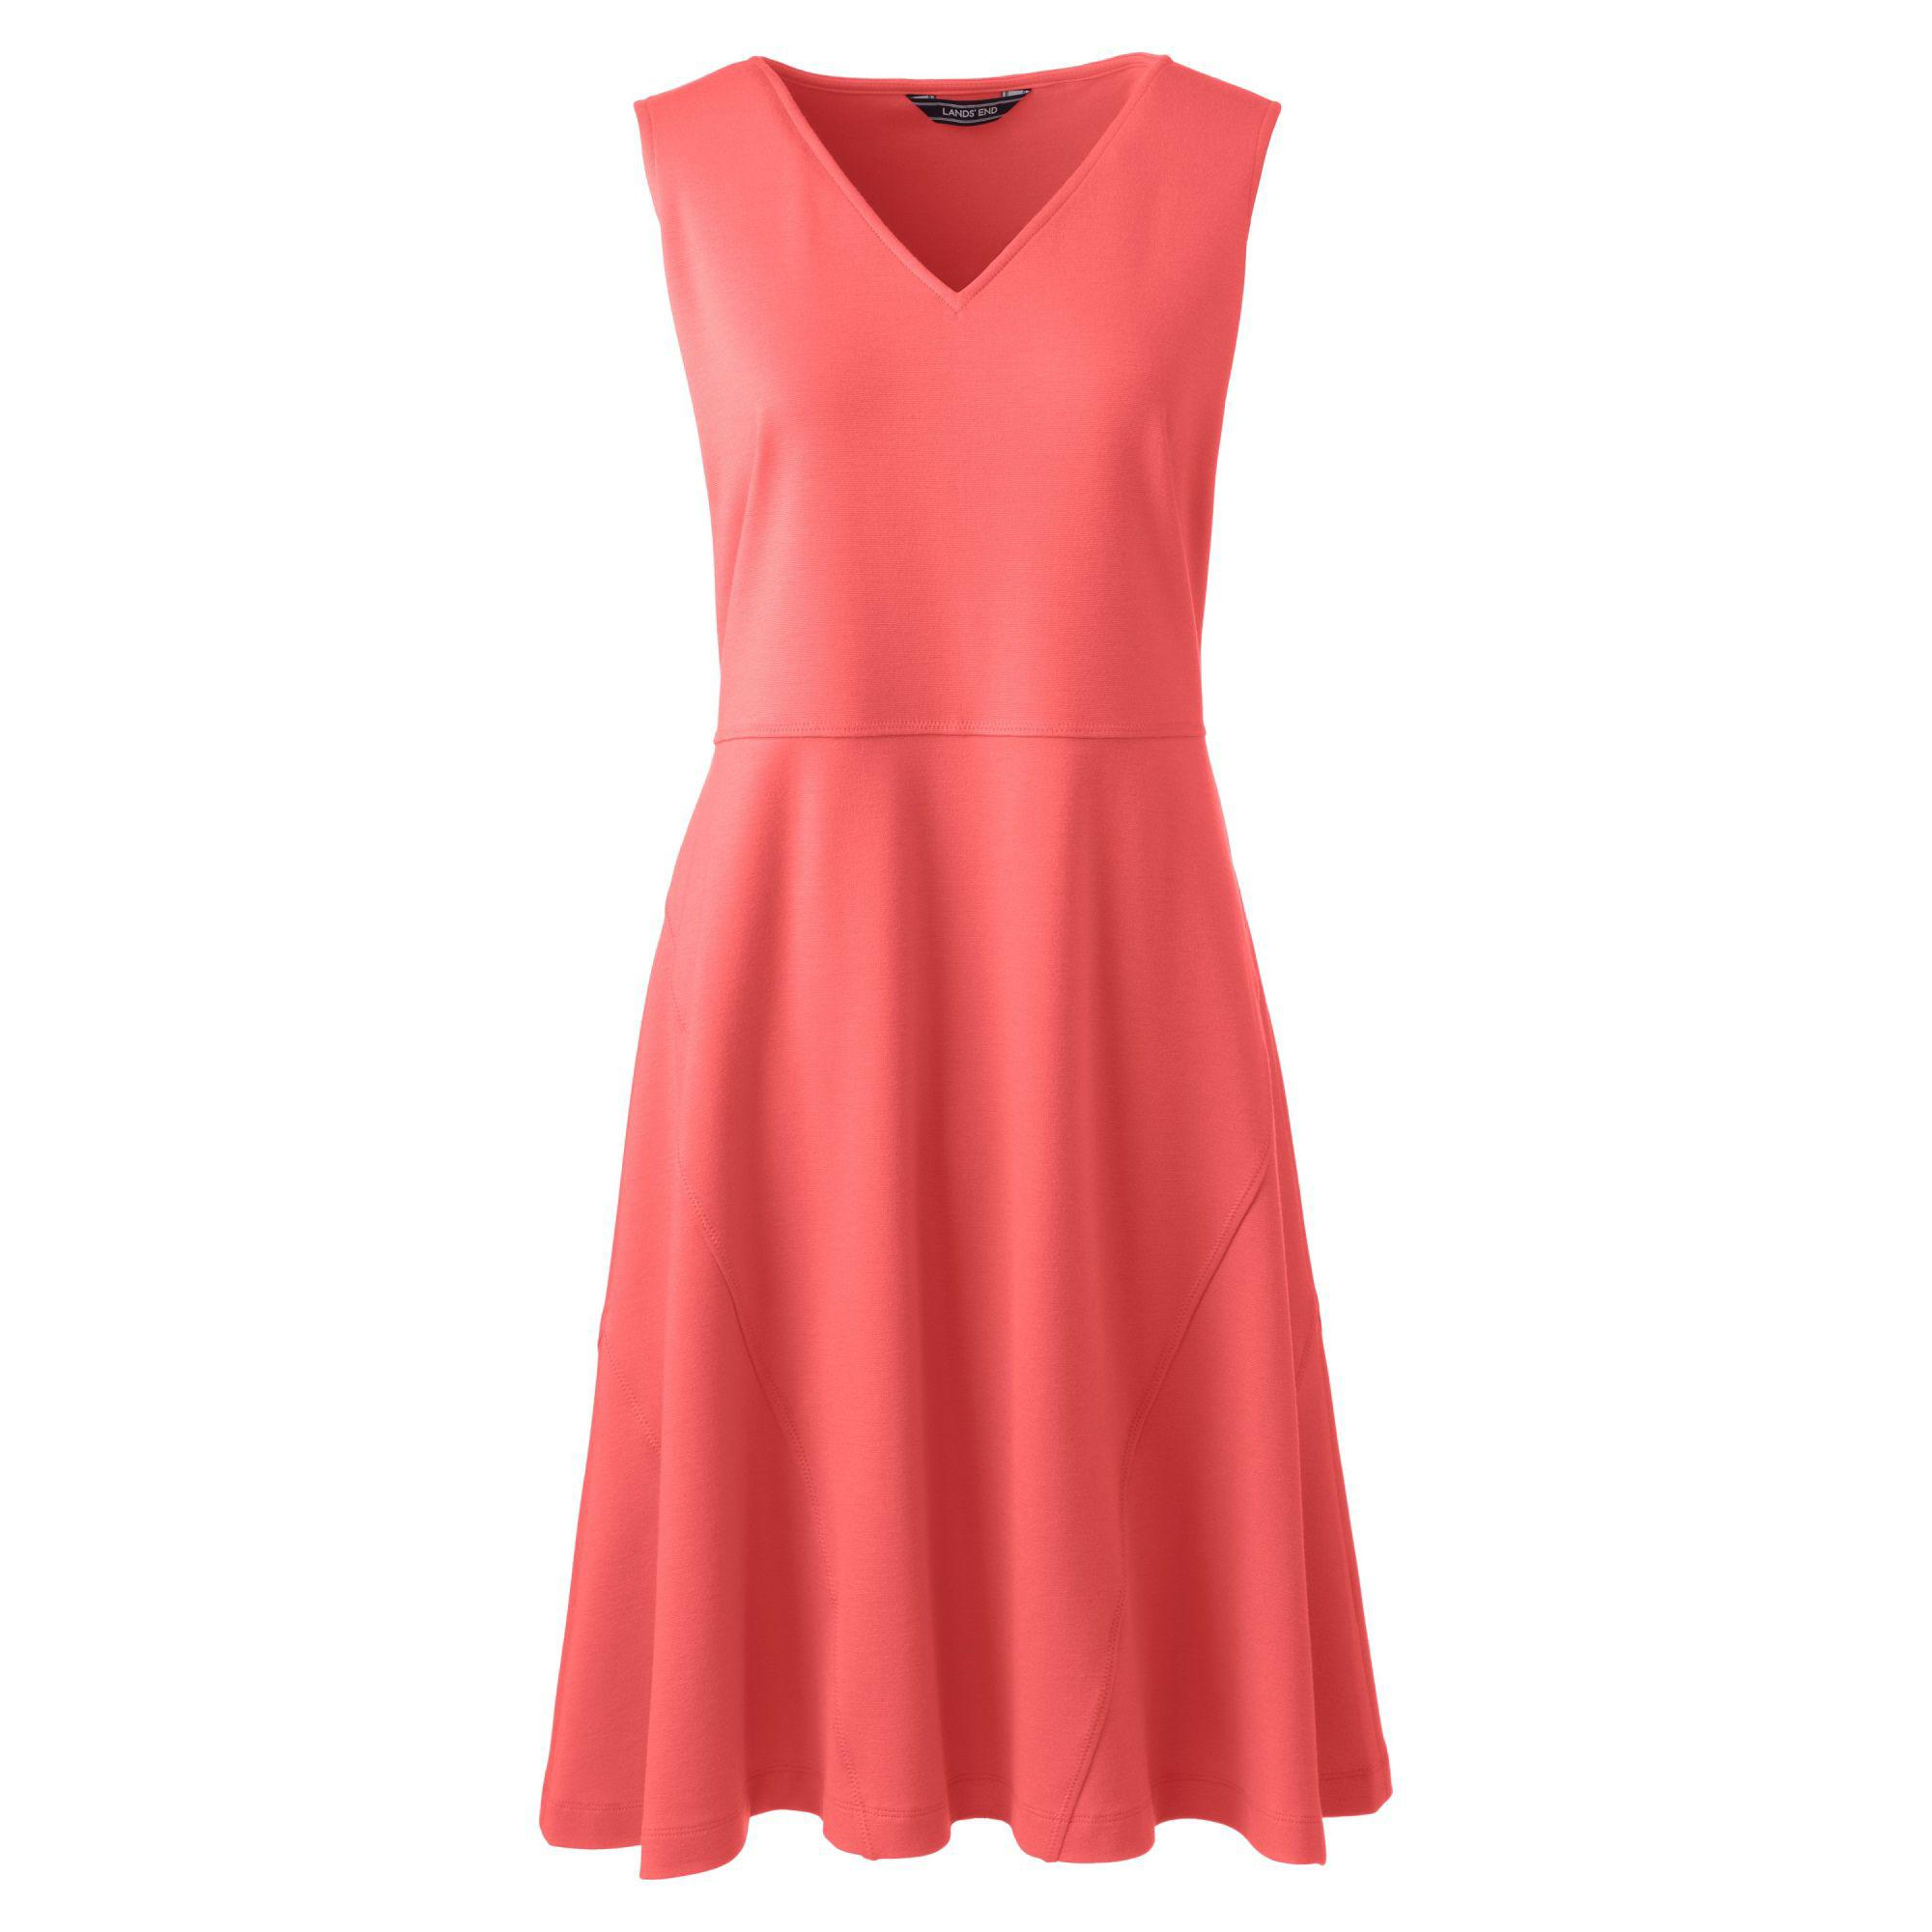 7a574bef9dd Lands  End Pink Womens Sleevesless Ponte Jersey Dress in Pink - Lyst